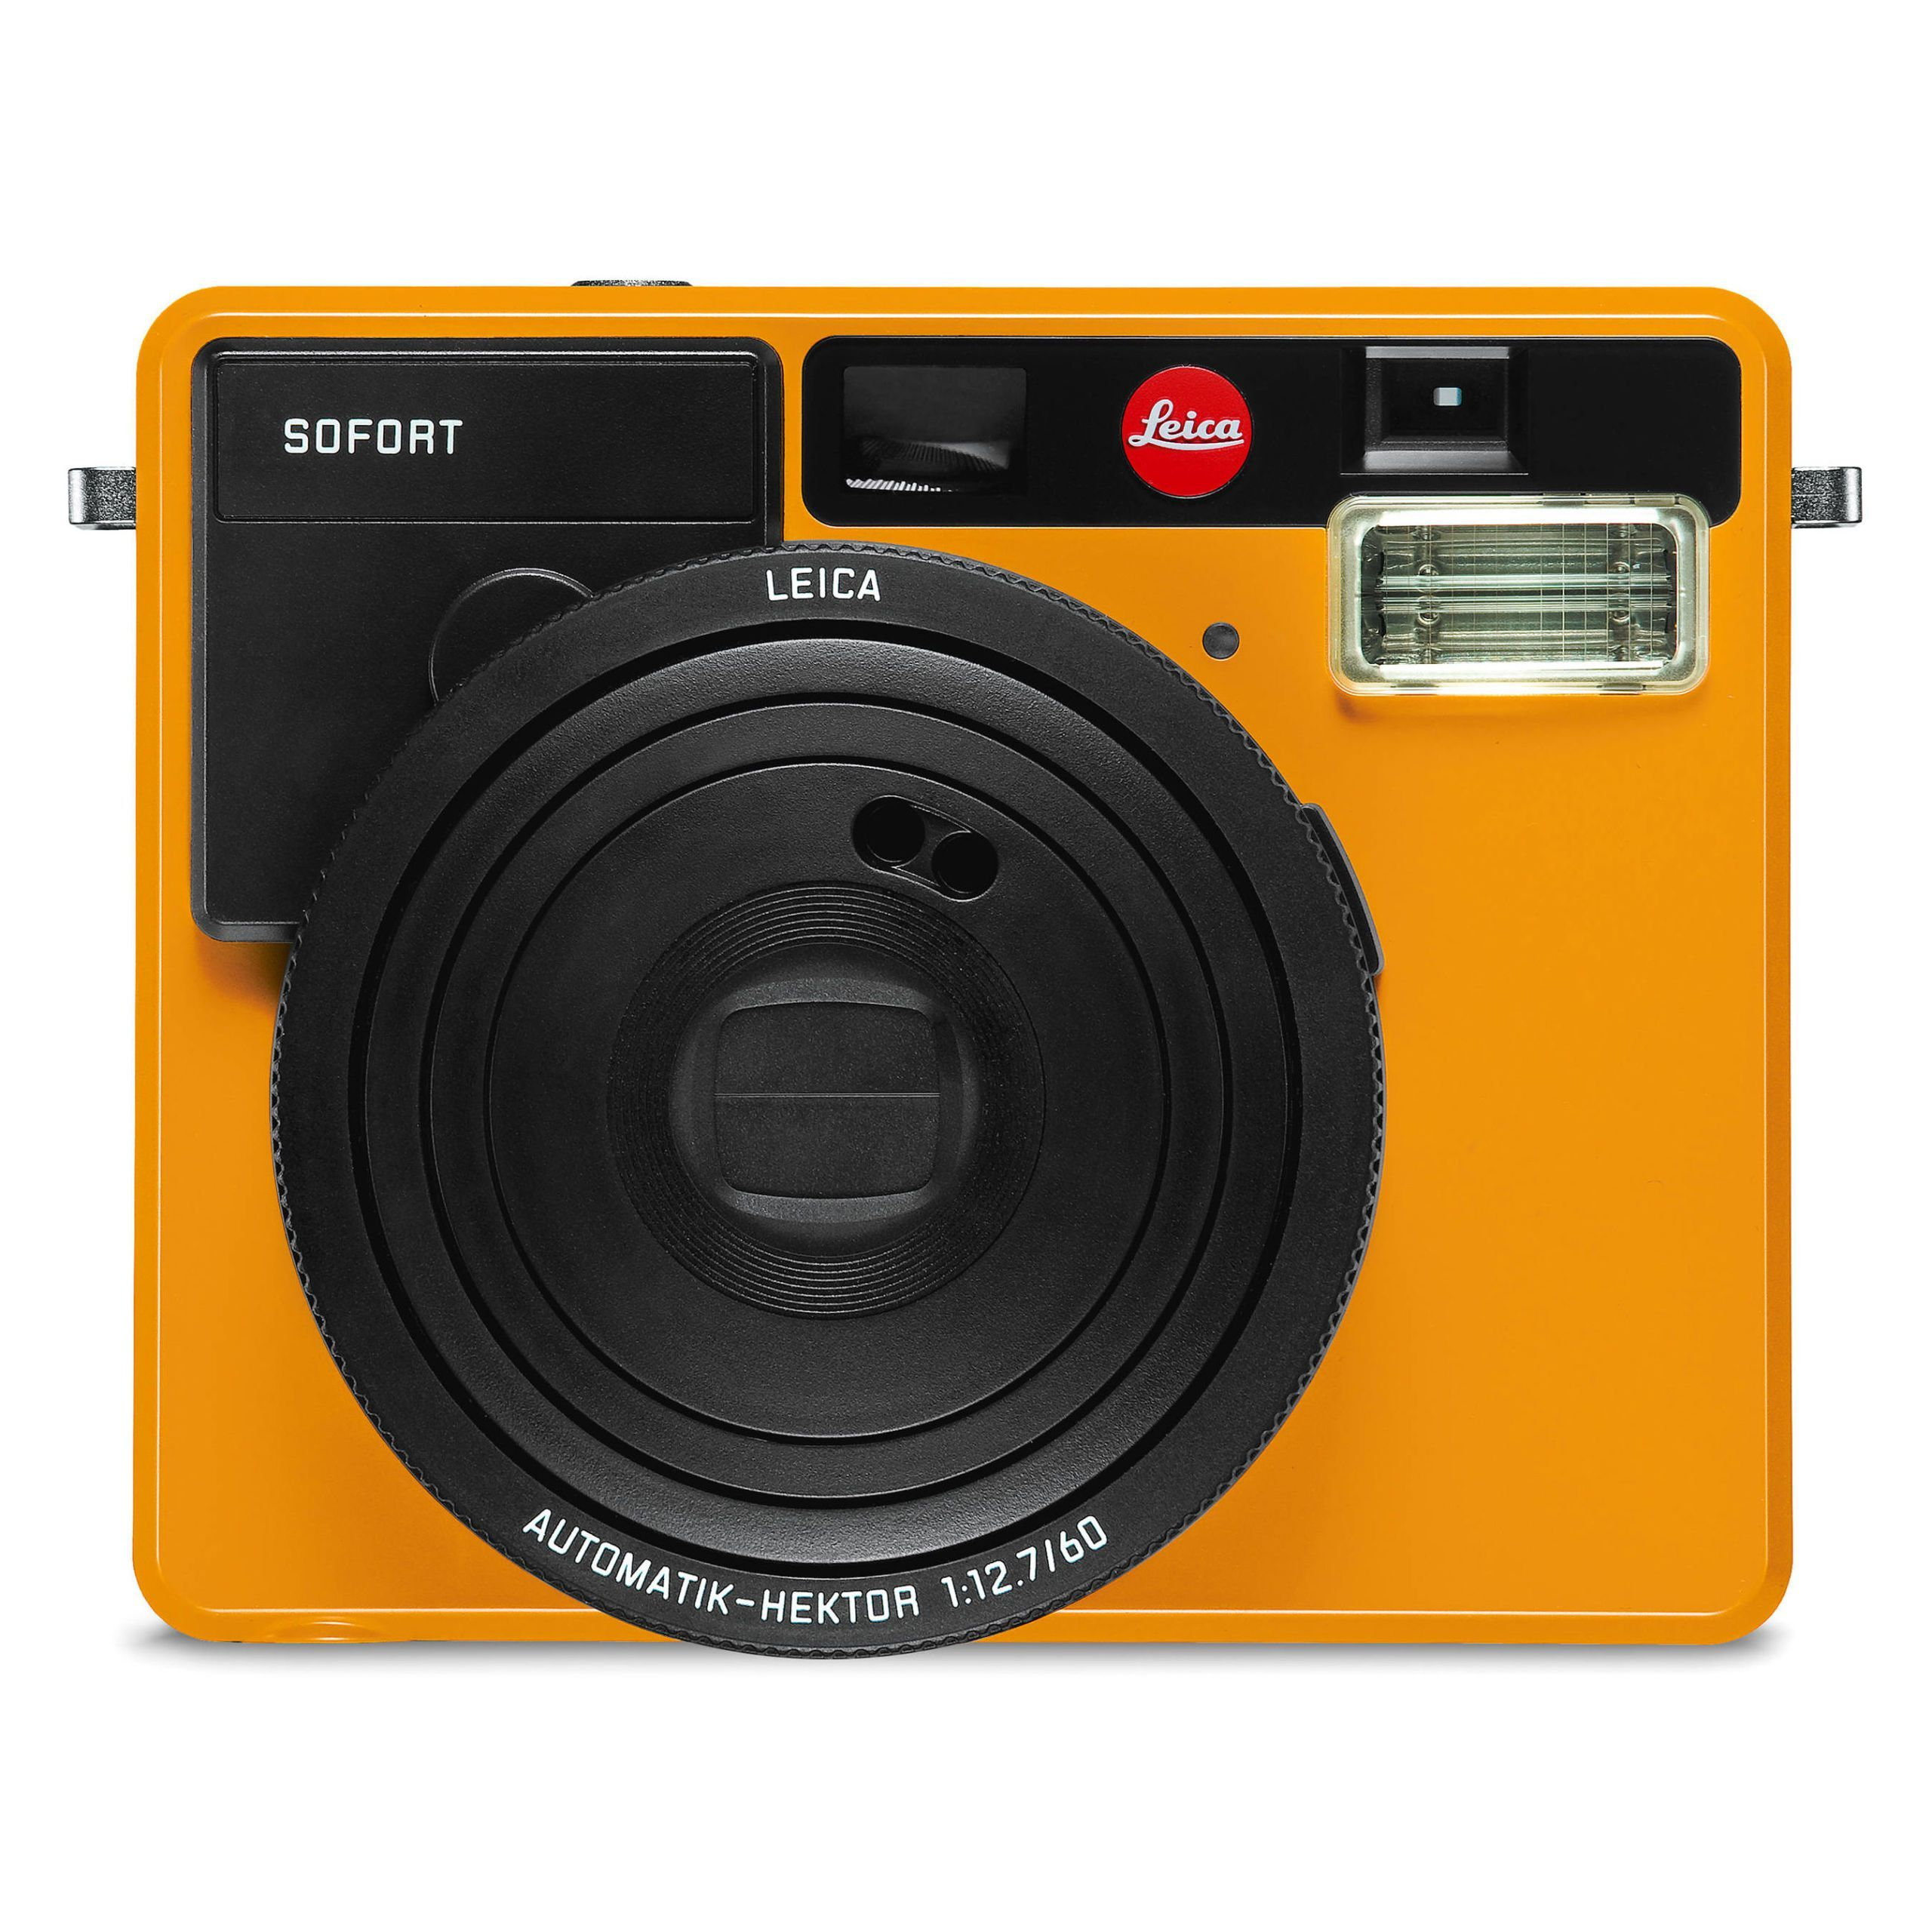 fotocamere con stampa istantanea - Leica Sofort Instant Camera